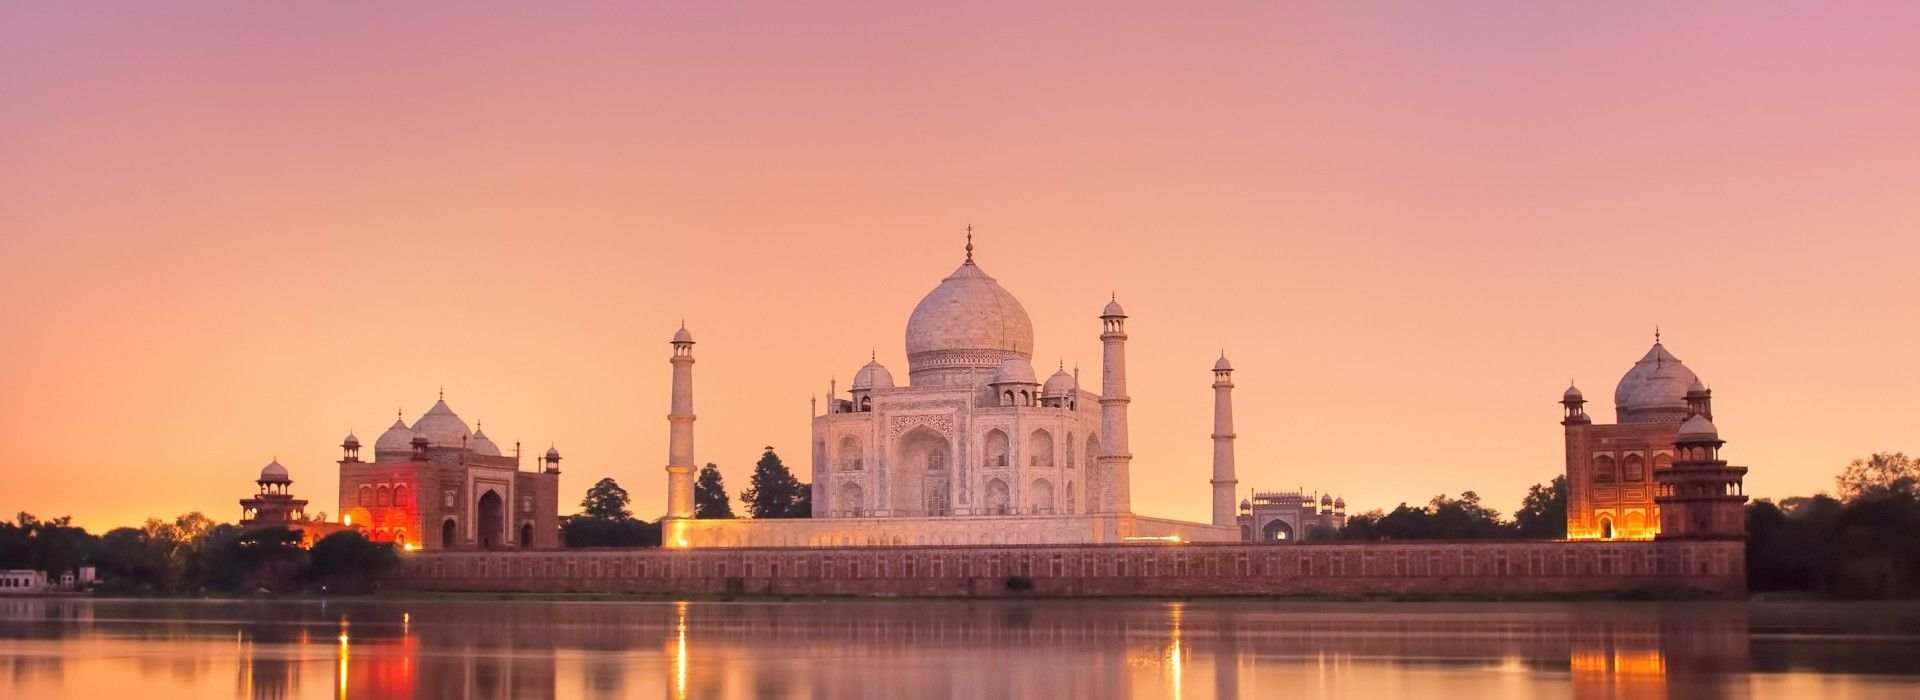 City sightseeing Tours in Agra